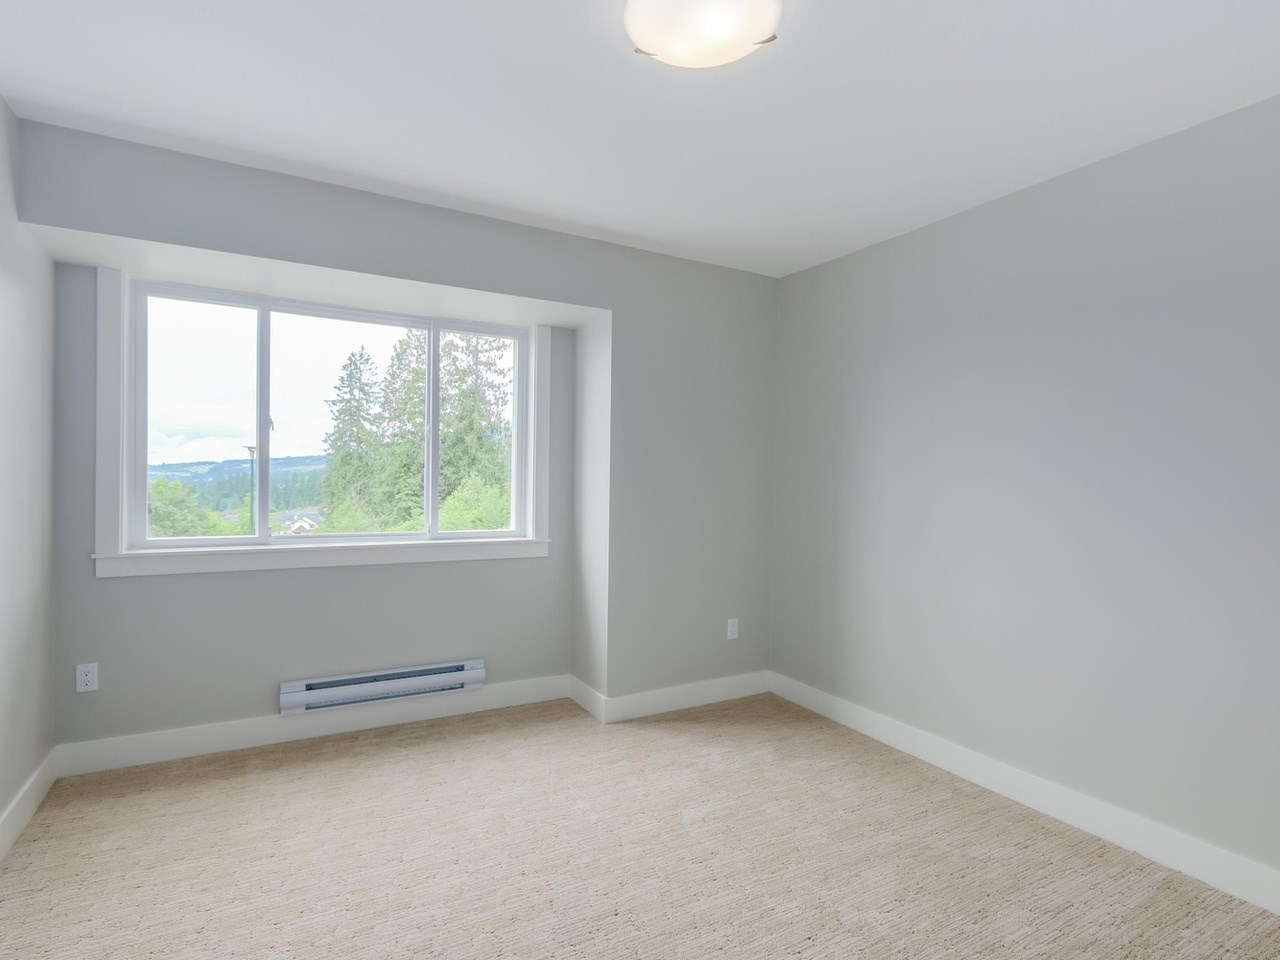 "Photo 11: 103 1405 DAYTON Street in Coquitlam: Burke Mountain Townhouse for sale in ""ERICA"" : MLS® # R2123284"